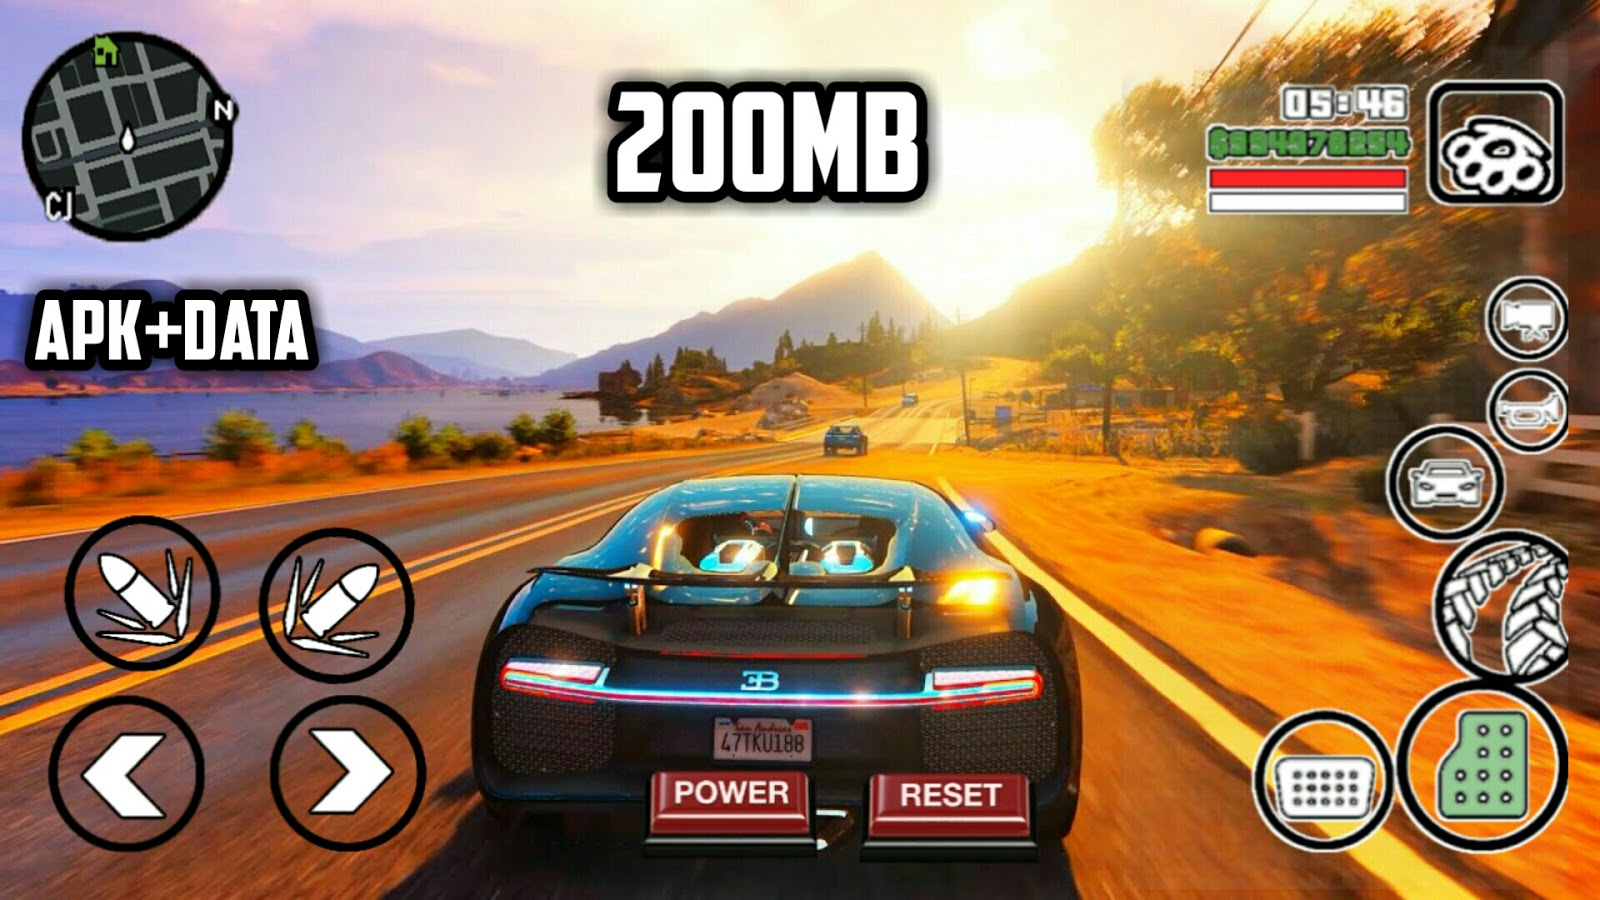 200MB] GTA V FULL HD GRAPHICS MODPACK APK+DATA |ALL GPU SUPPORTED